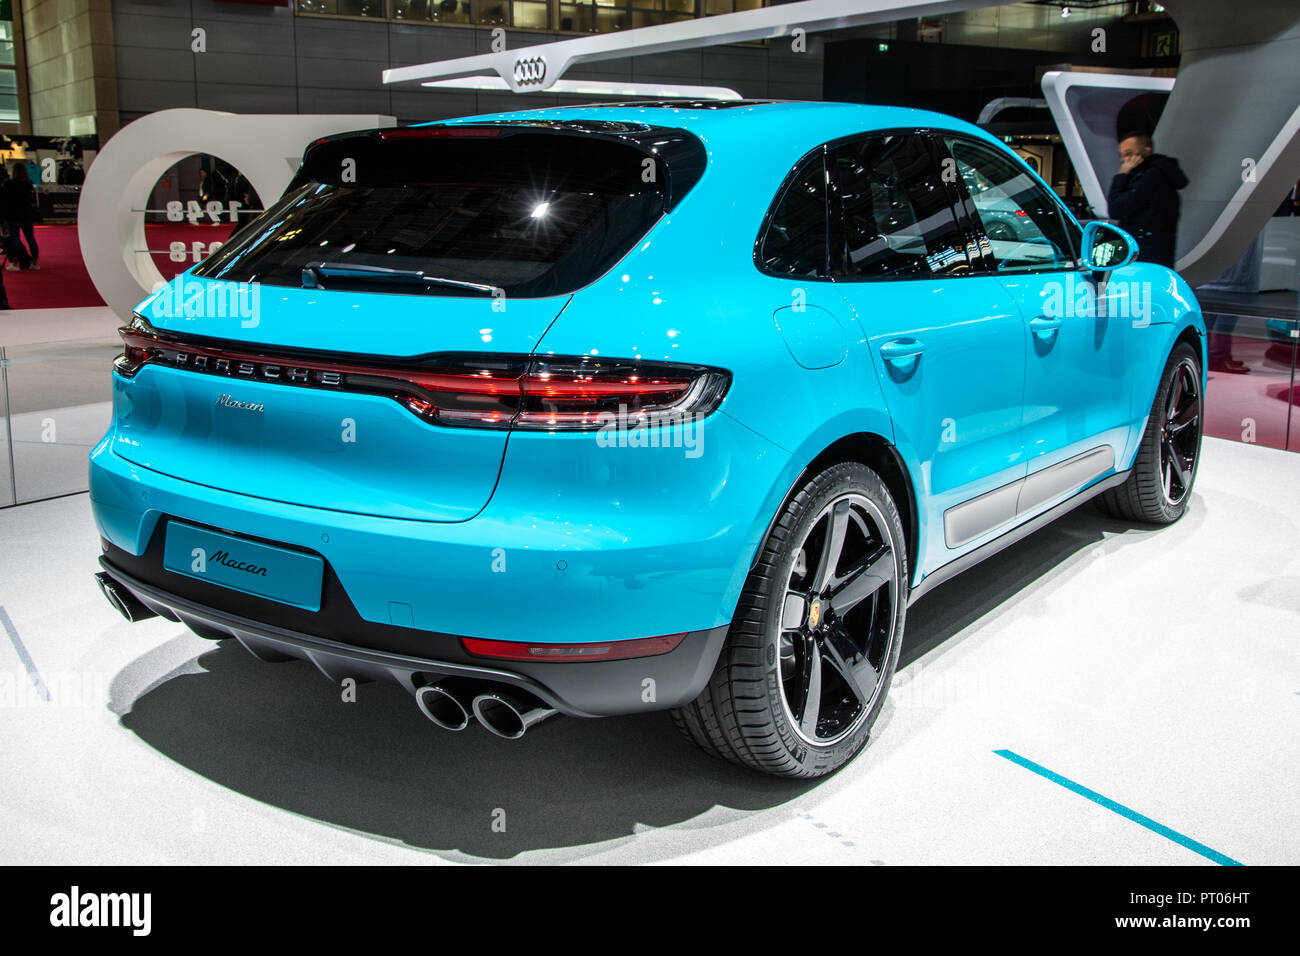 paris okt 3 2018 neue 2019 porsche macan suv auto auf. Black Bedroom Furniture Sets. Home Design Ideas